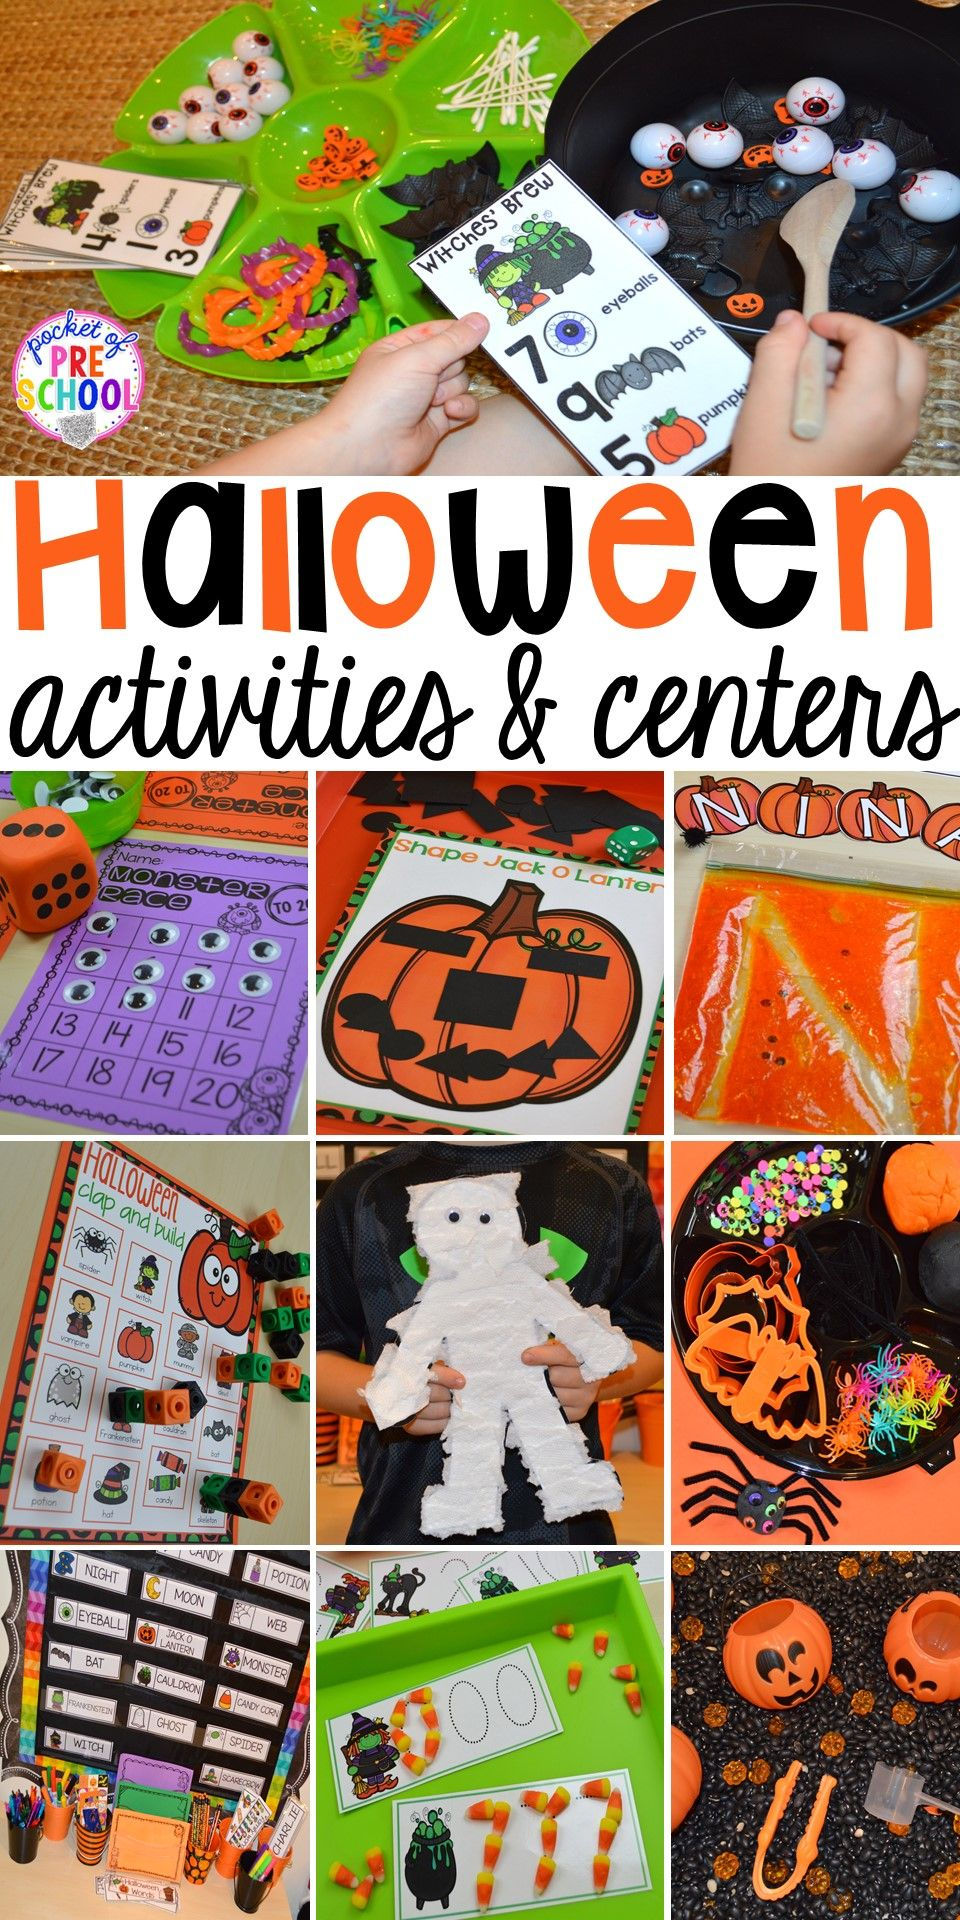 halloween activities and centers for preschool, pre-k, and